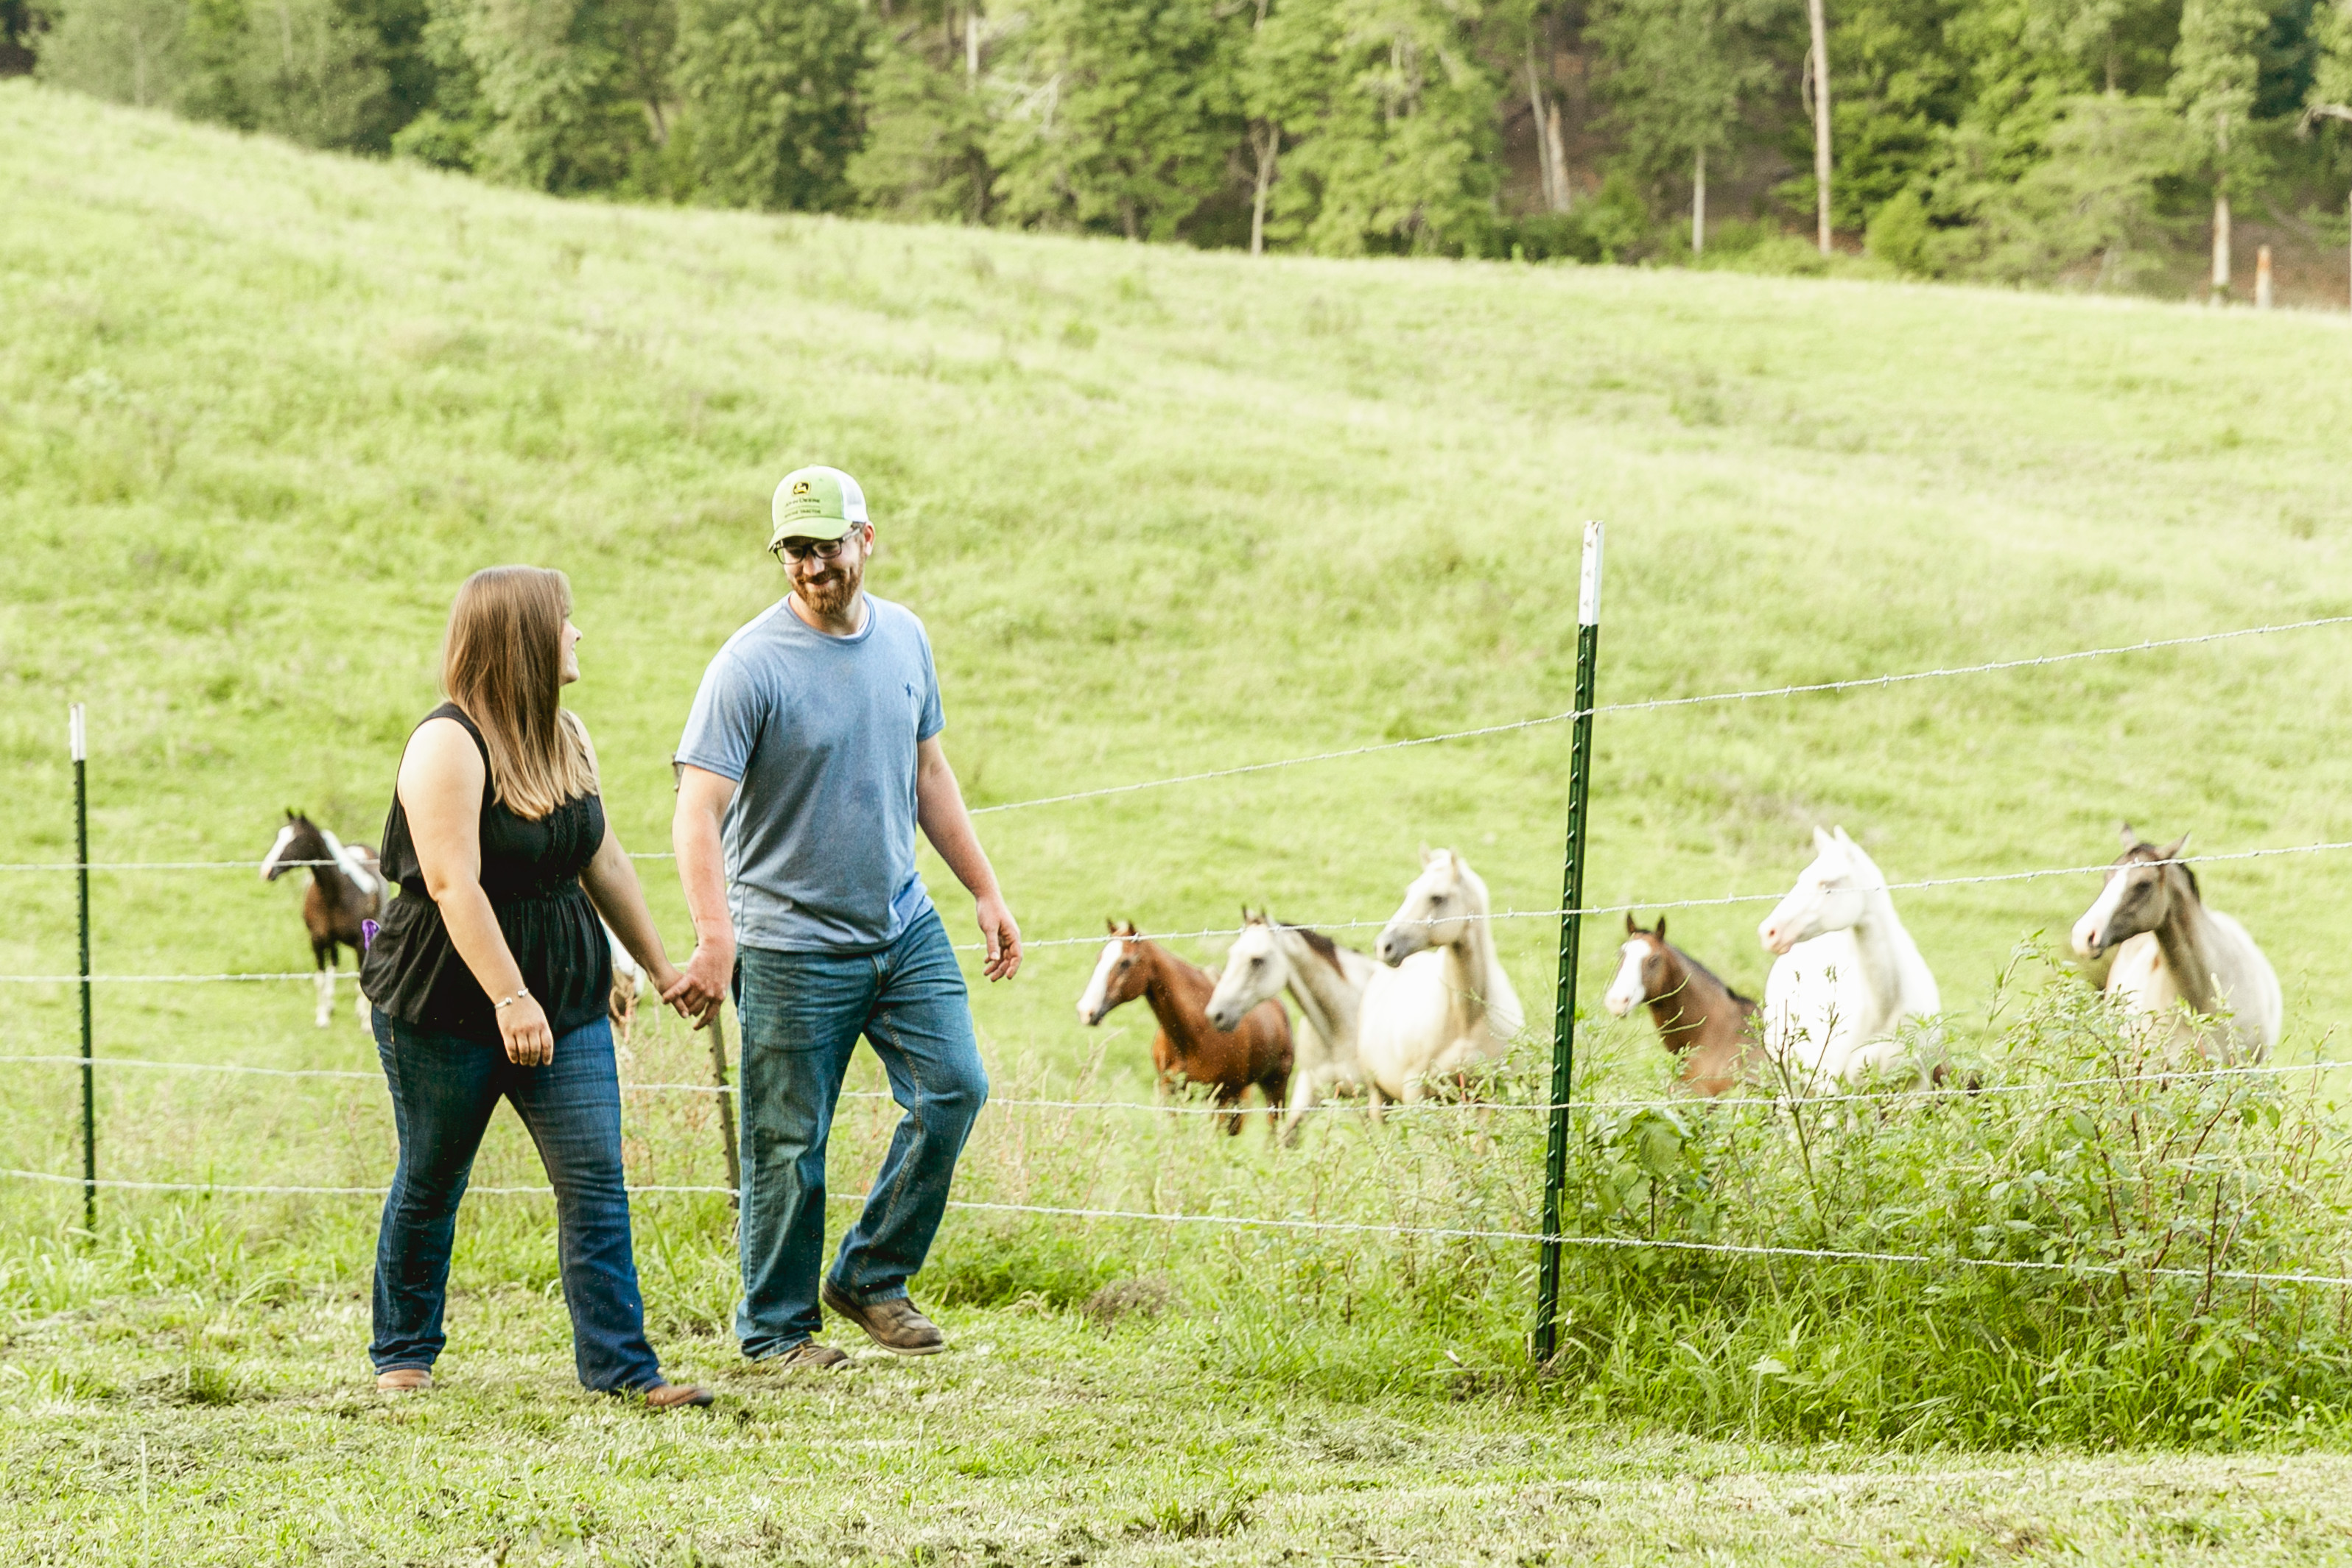 Couple holding hands and walking in a pasture by a fence with horses in the background